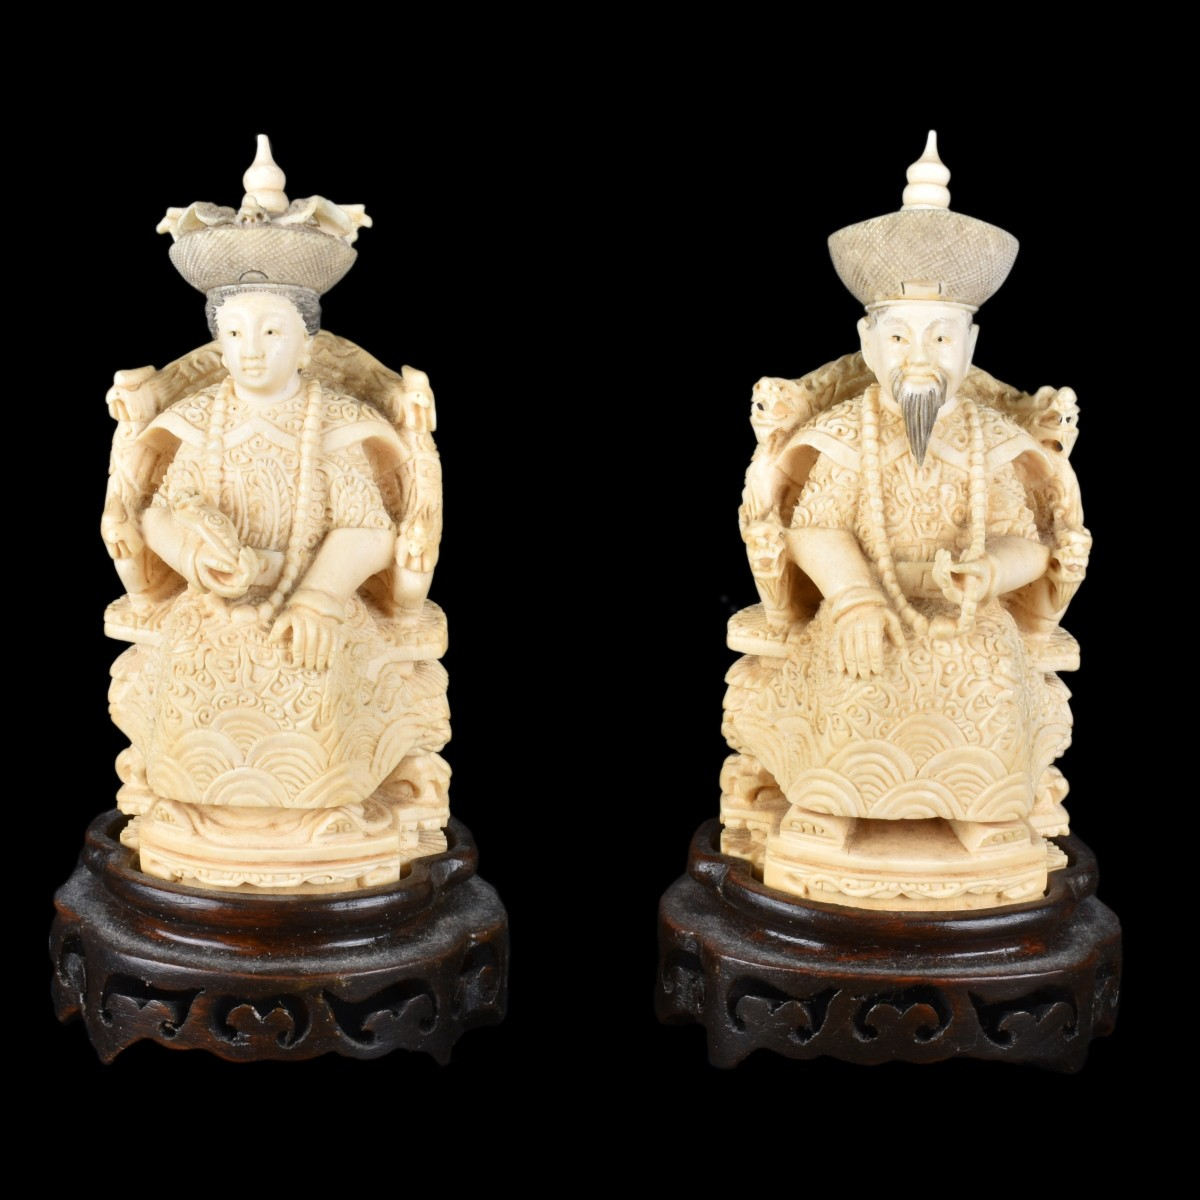 Pair of Chinese Carved Ivory Figurines